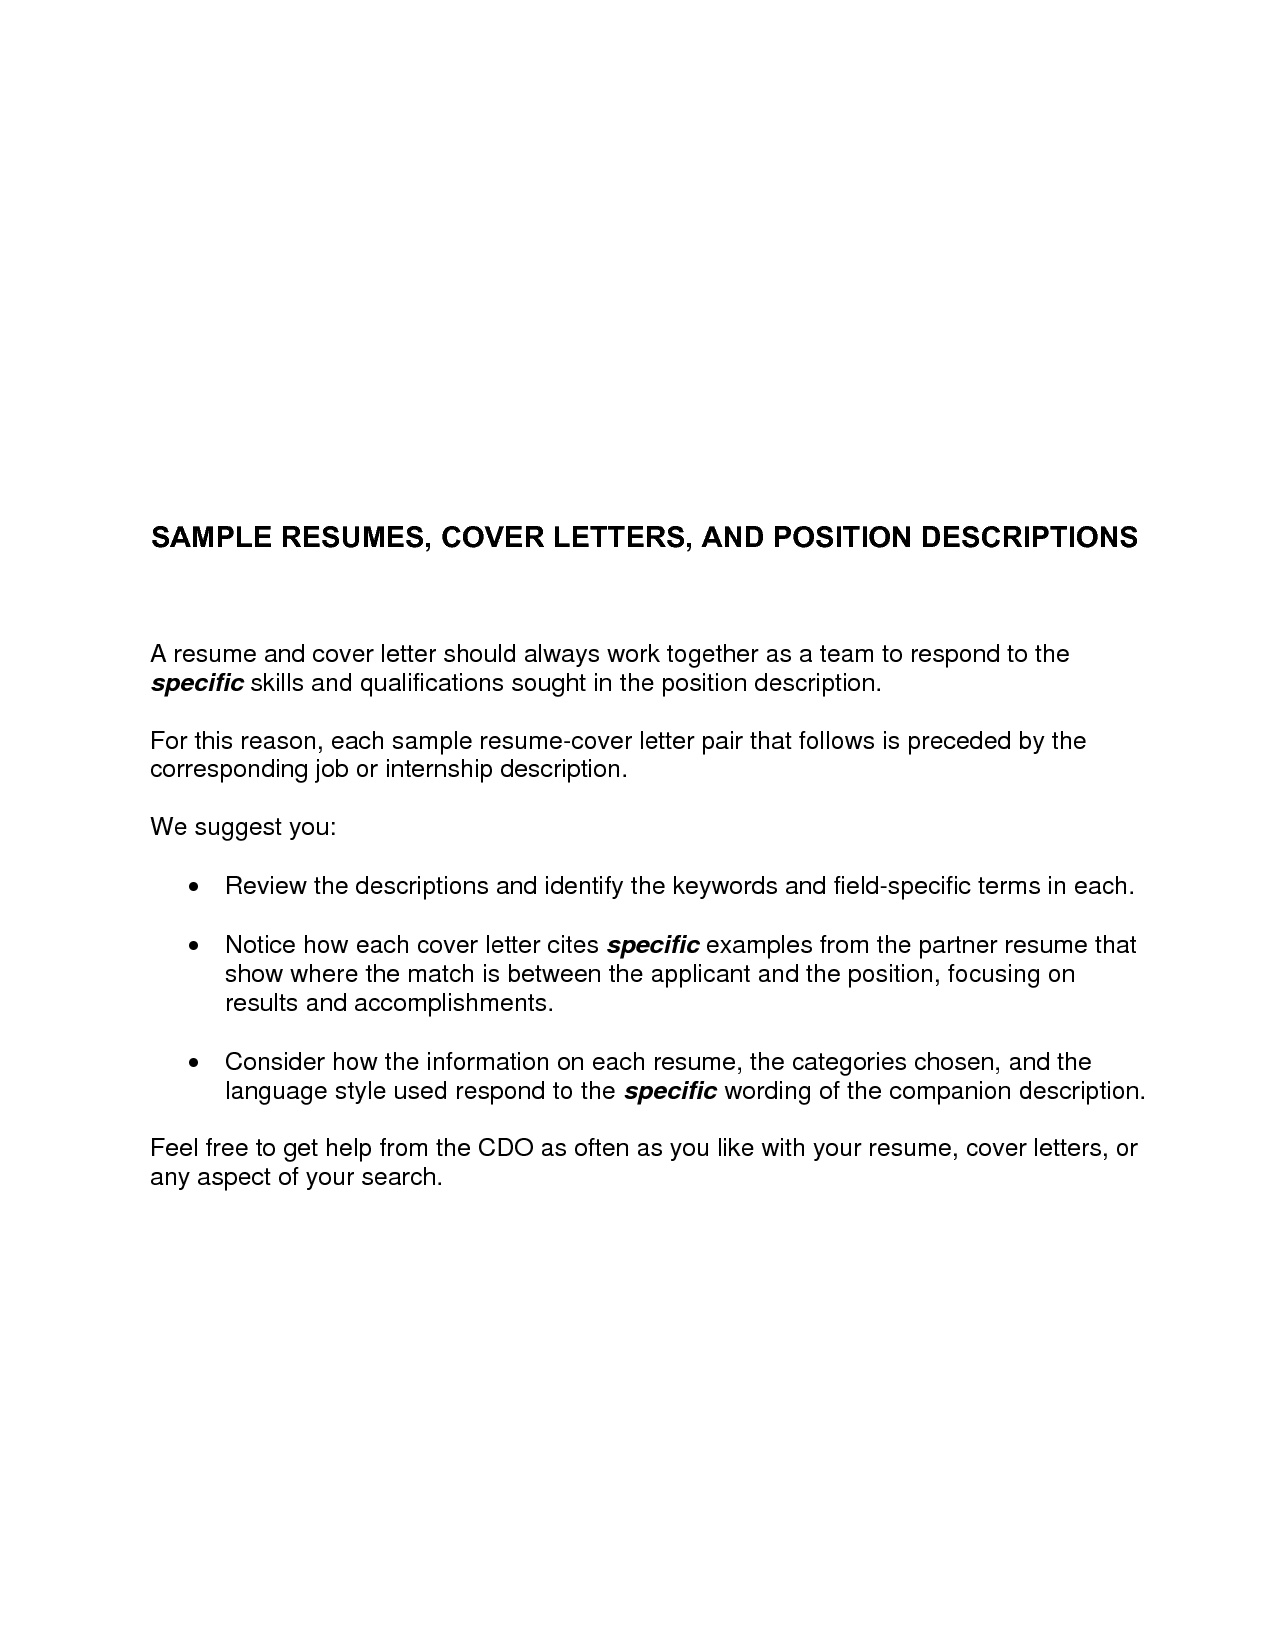 cover letters for resumes best templatesimple cover letter application letter sample - Cover Letters Samples Free